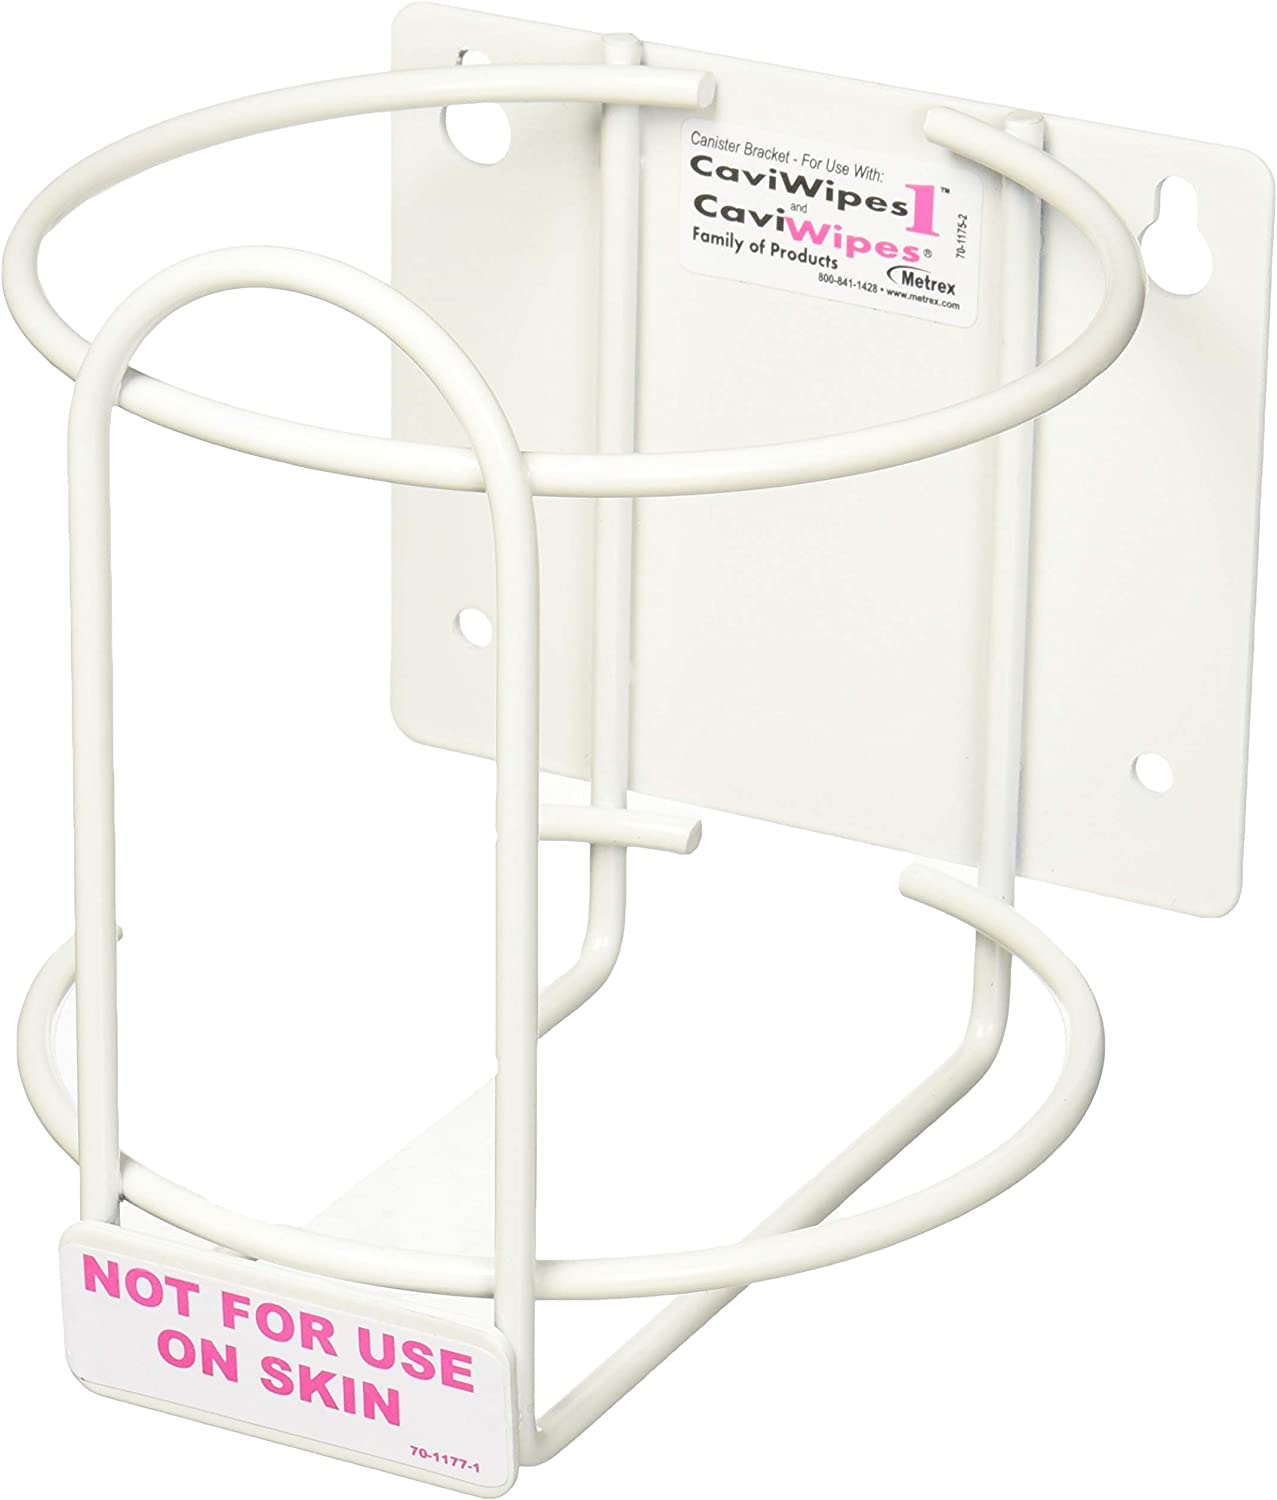 pack of 3 Counter roll holder wall brackets